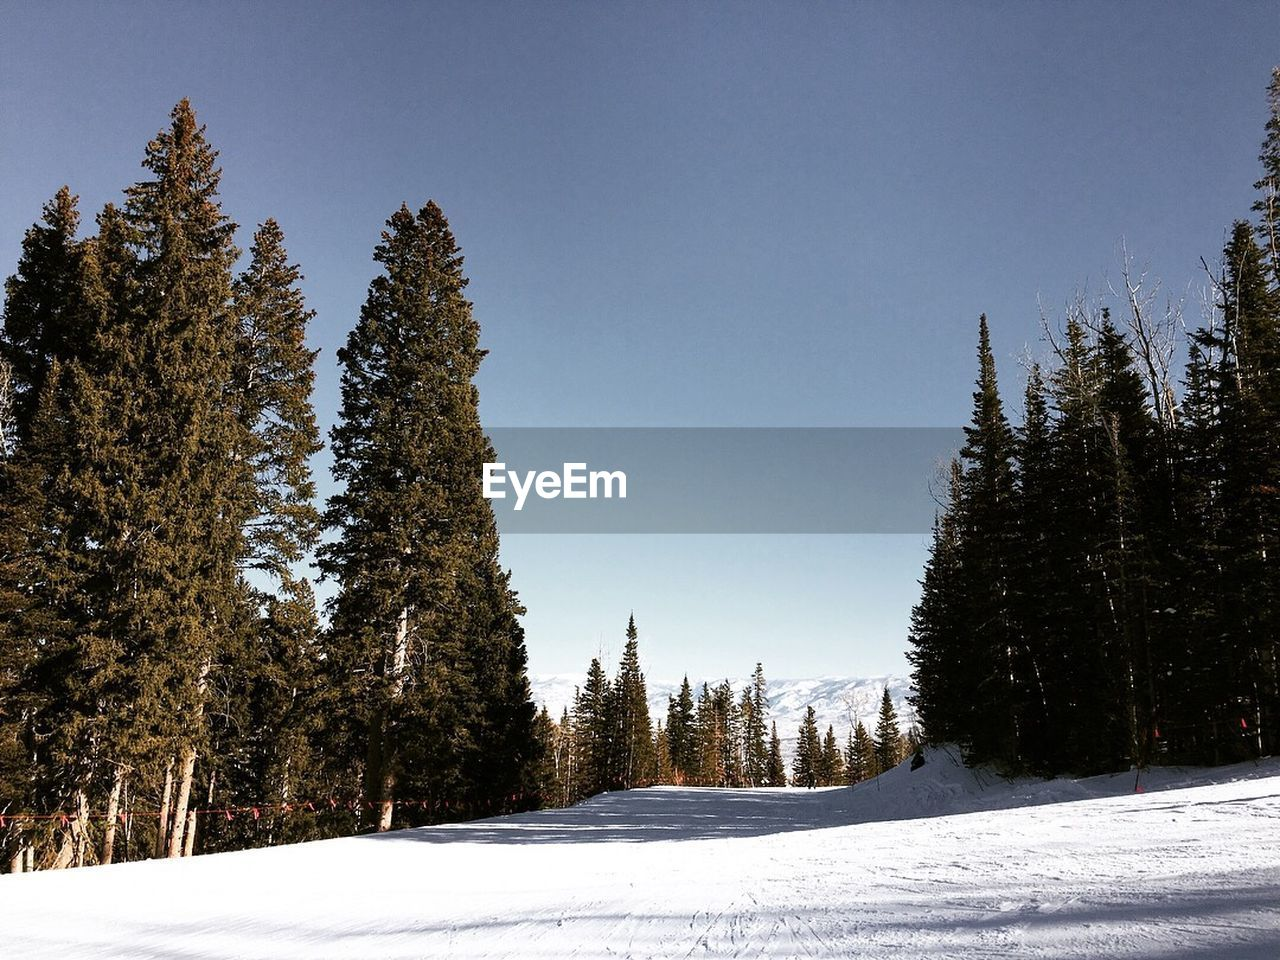 snow, winter, cold temperature, tree, plant, sky, beauty in nature, covering, nature, tranquility, clear sky, scenics - nature, growth, land, tranquil scene, no people, field, environment, white color, outdoors, pine tree, coniferous tree, snowcapped mountain